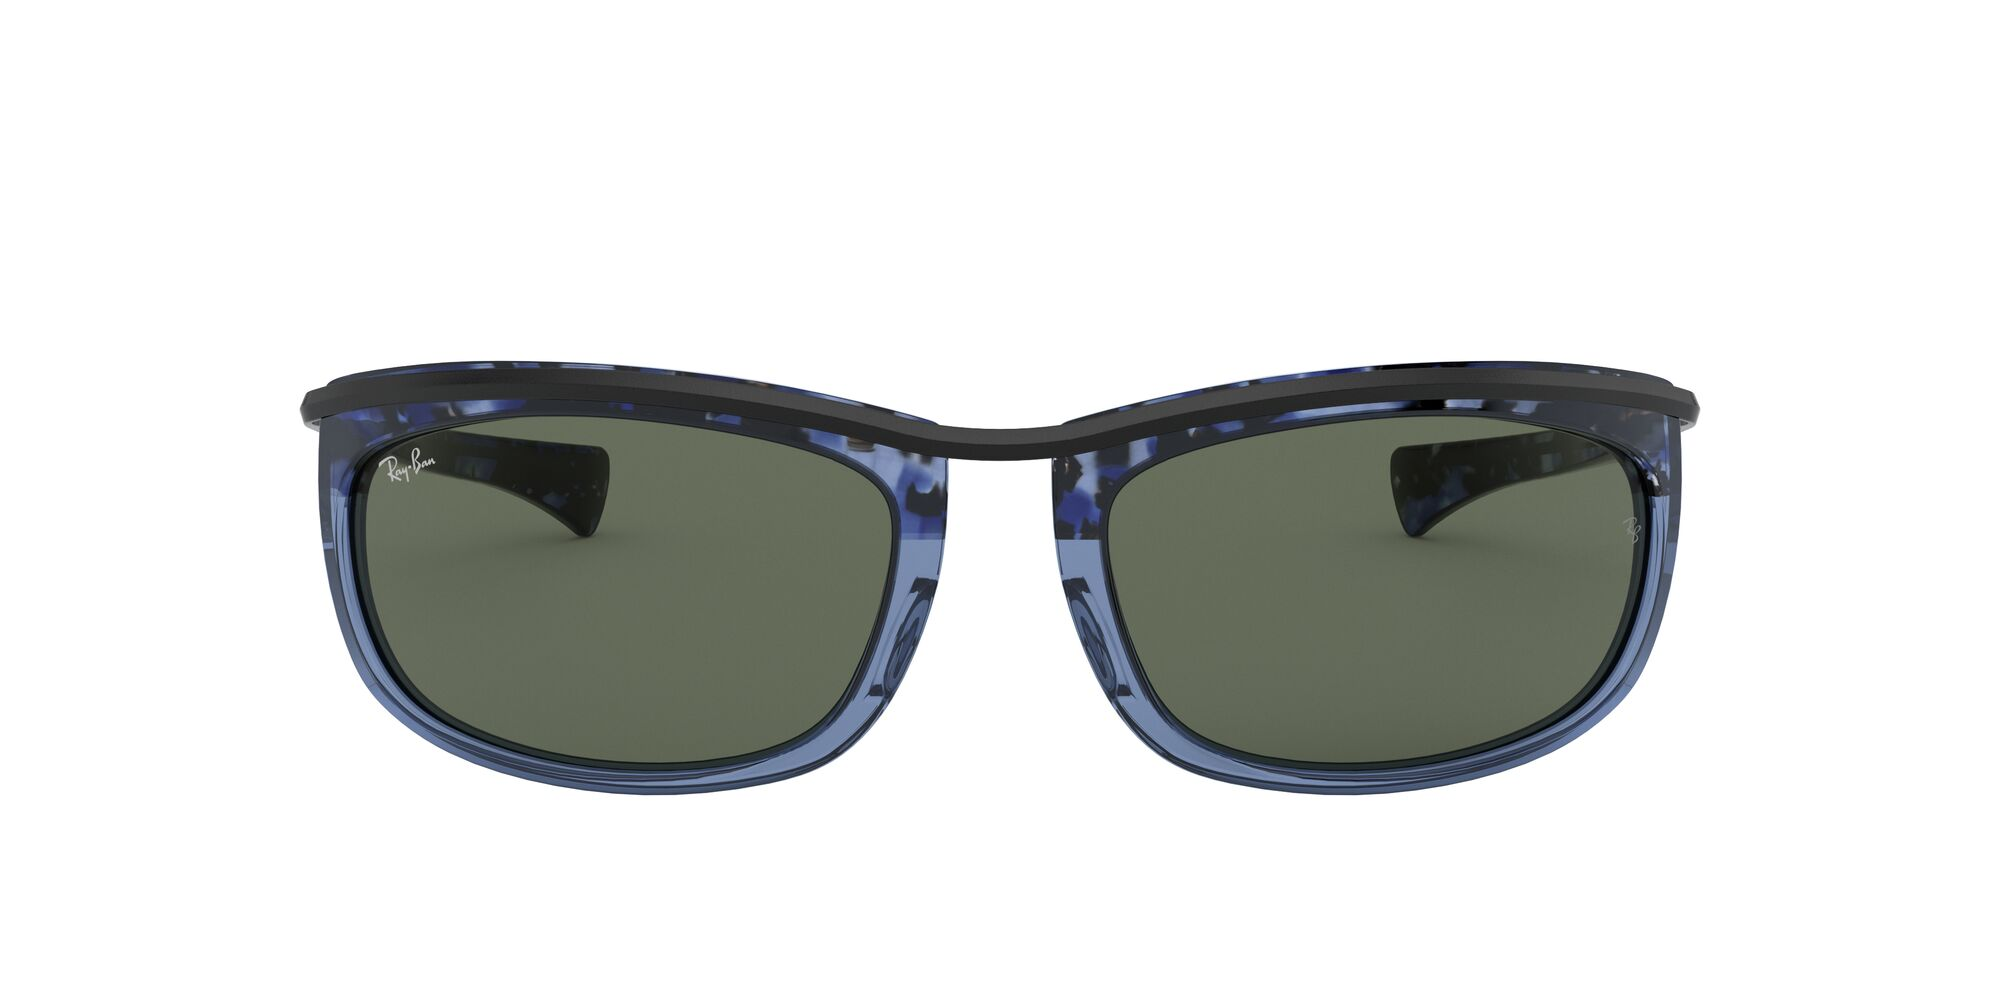 Front Ray-Ban Ray-Ban 0RB2319 128831 62/19 Bruin/Groen